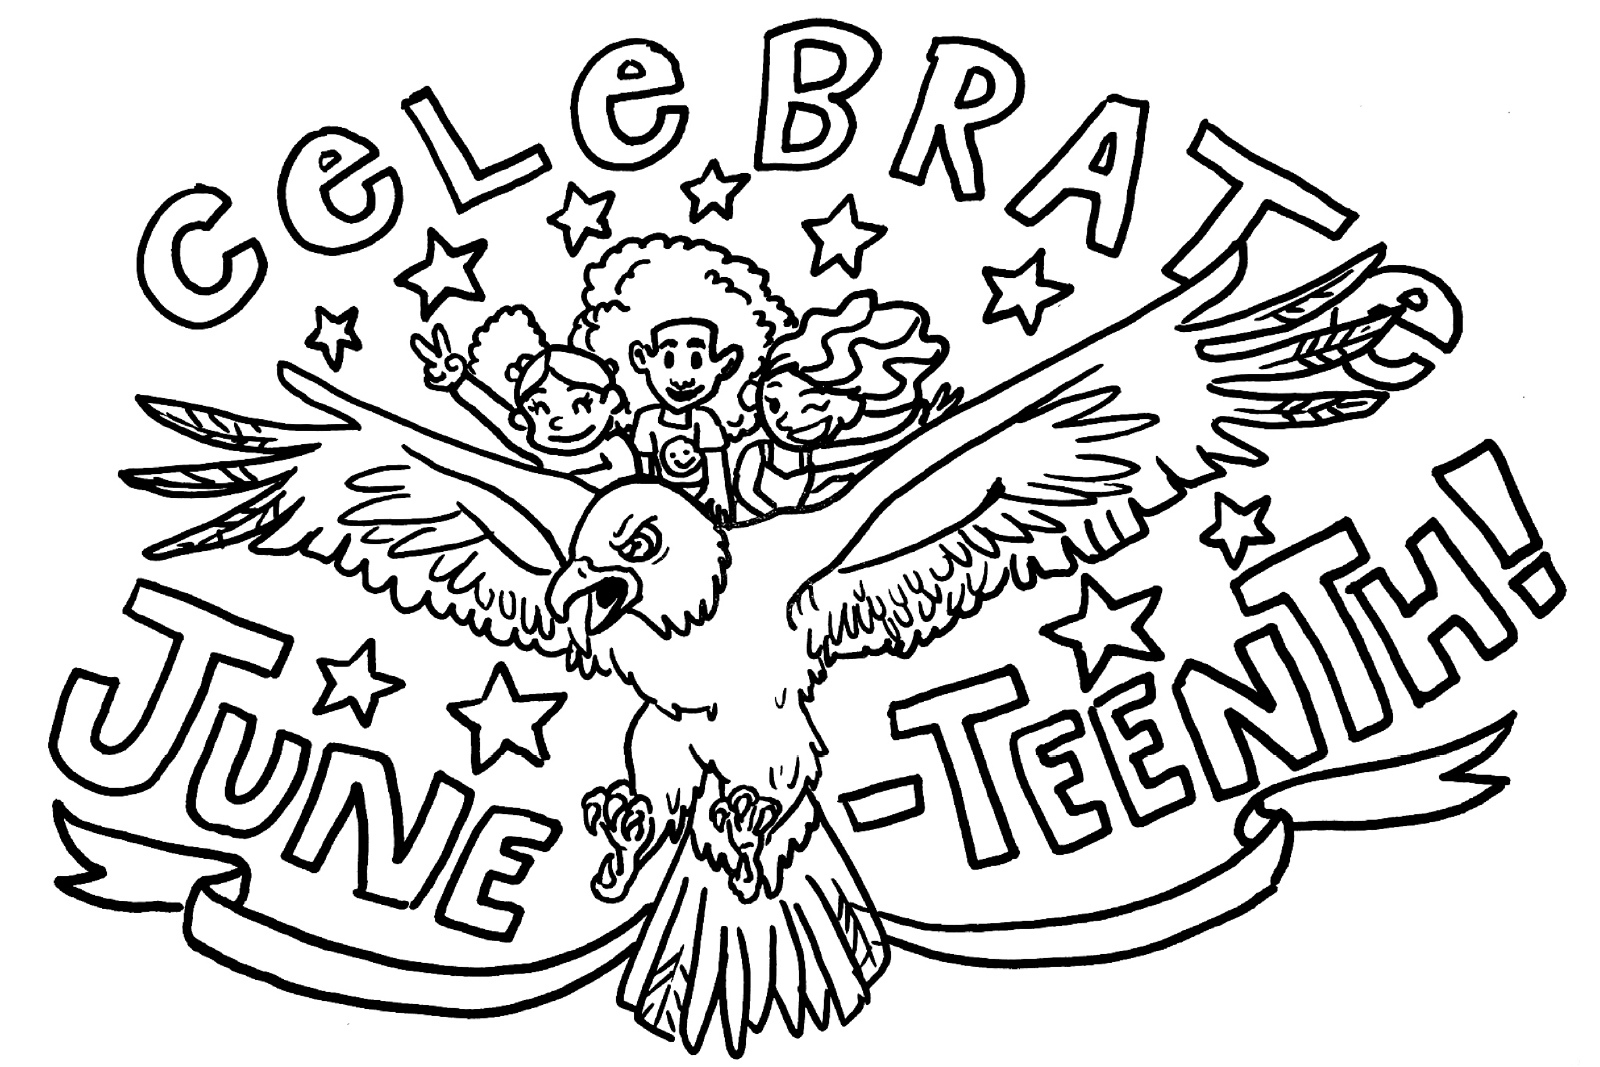 Coloring book pages with the text Celebrate Juneteenth and three children riding an eagle